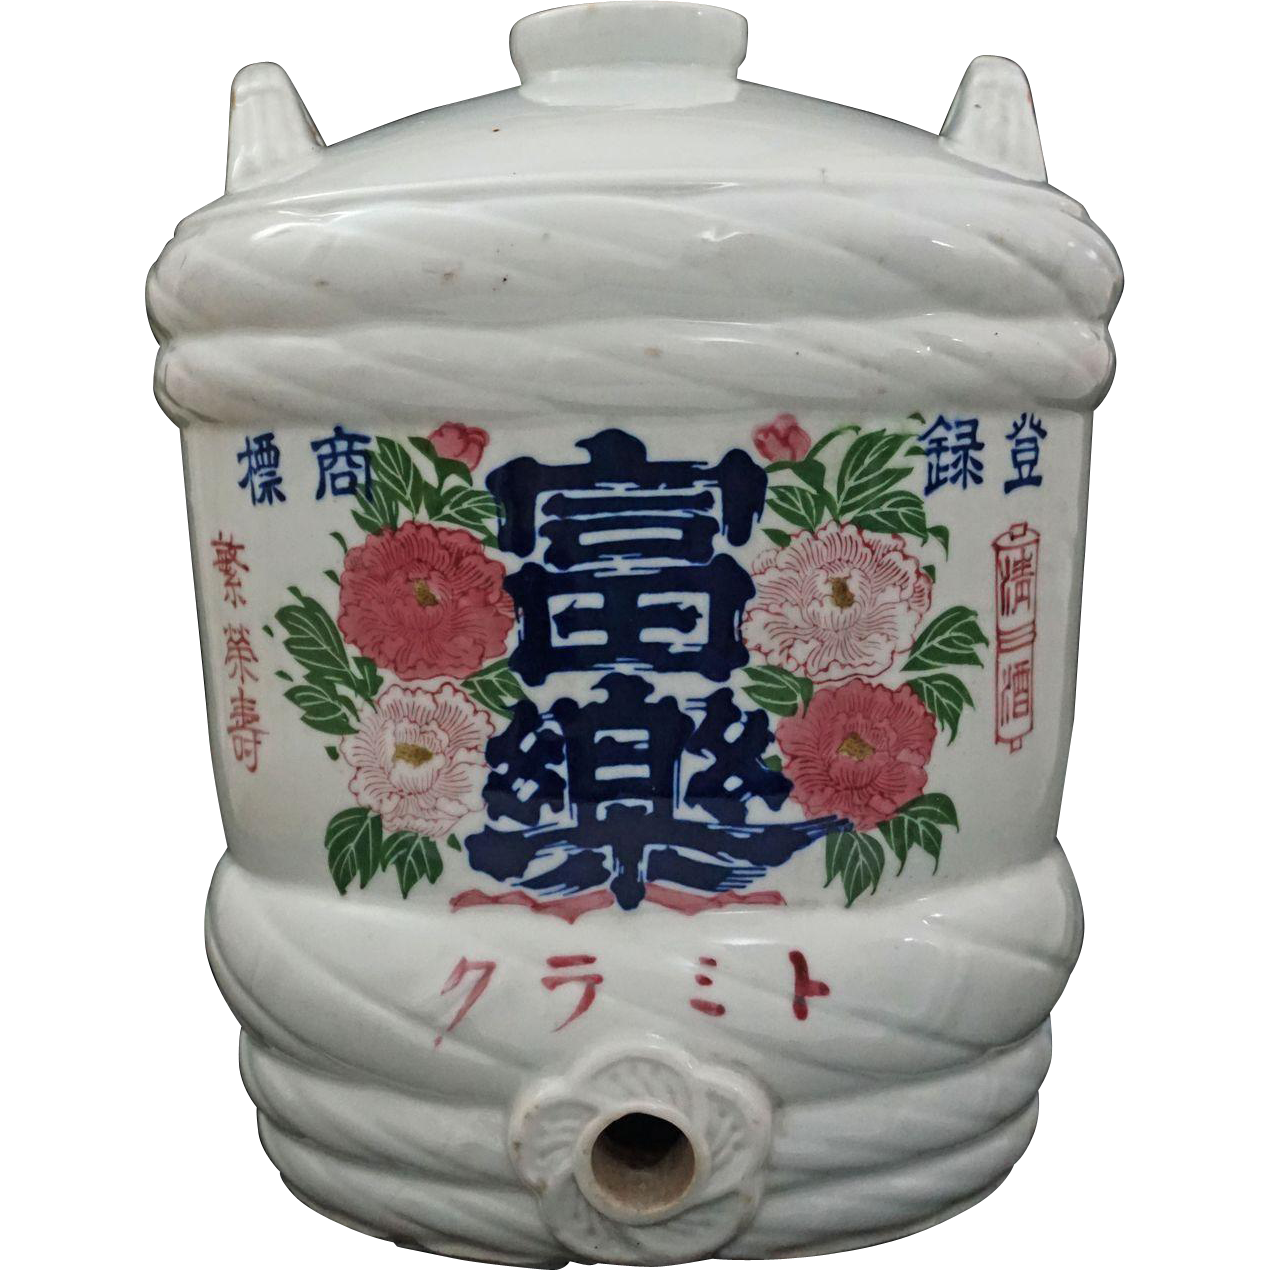 Japanese Sake Barrel / Jar 12 1/2 Inch Tall Floral Characters Blue White Pink Green Ceramic - Japan